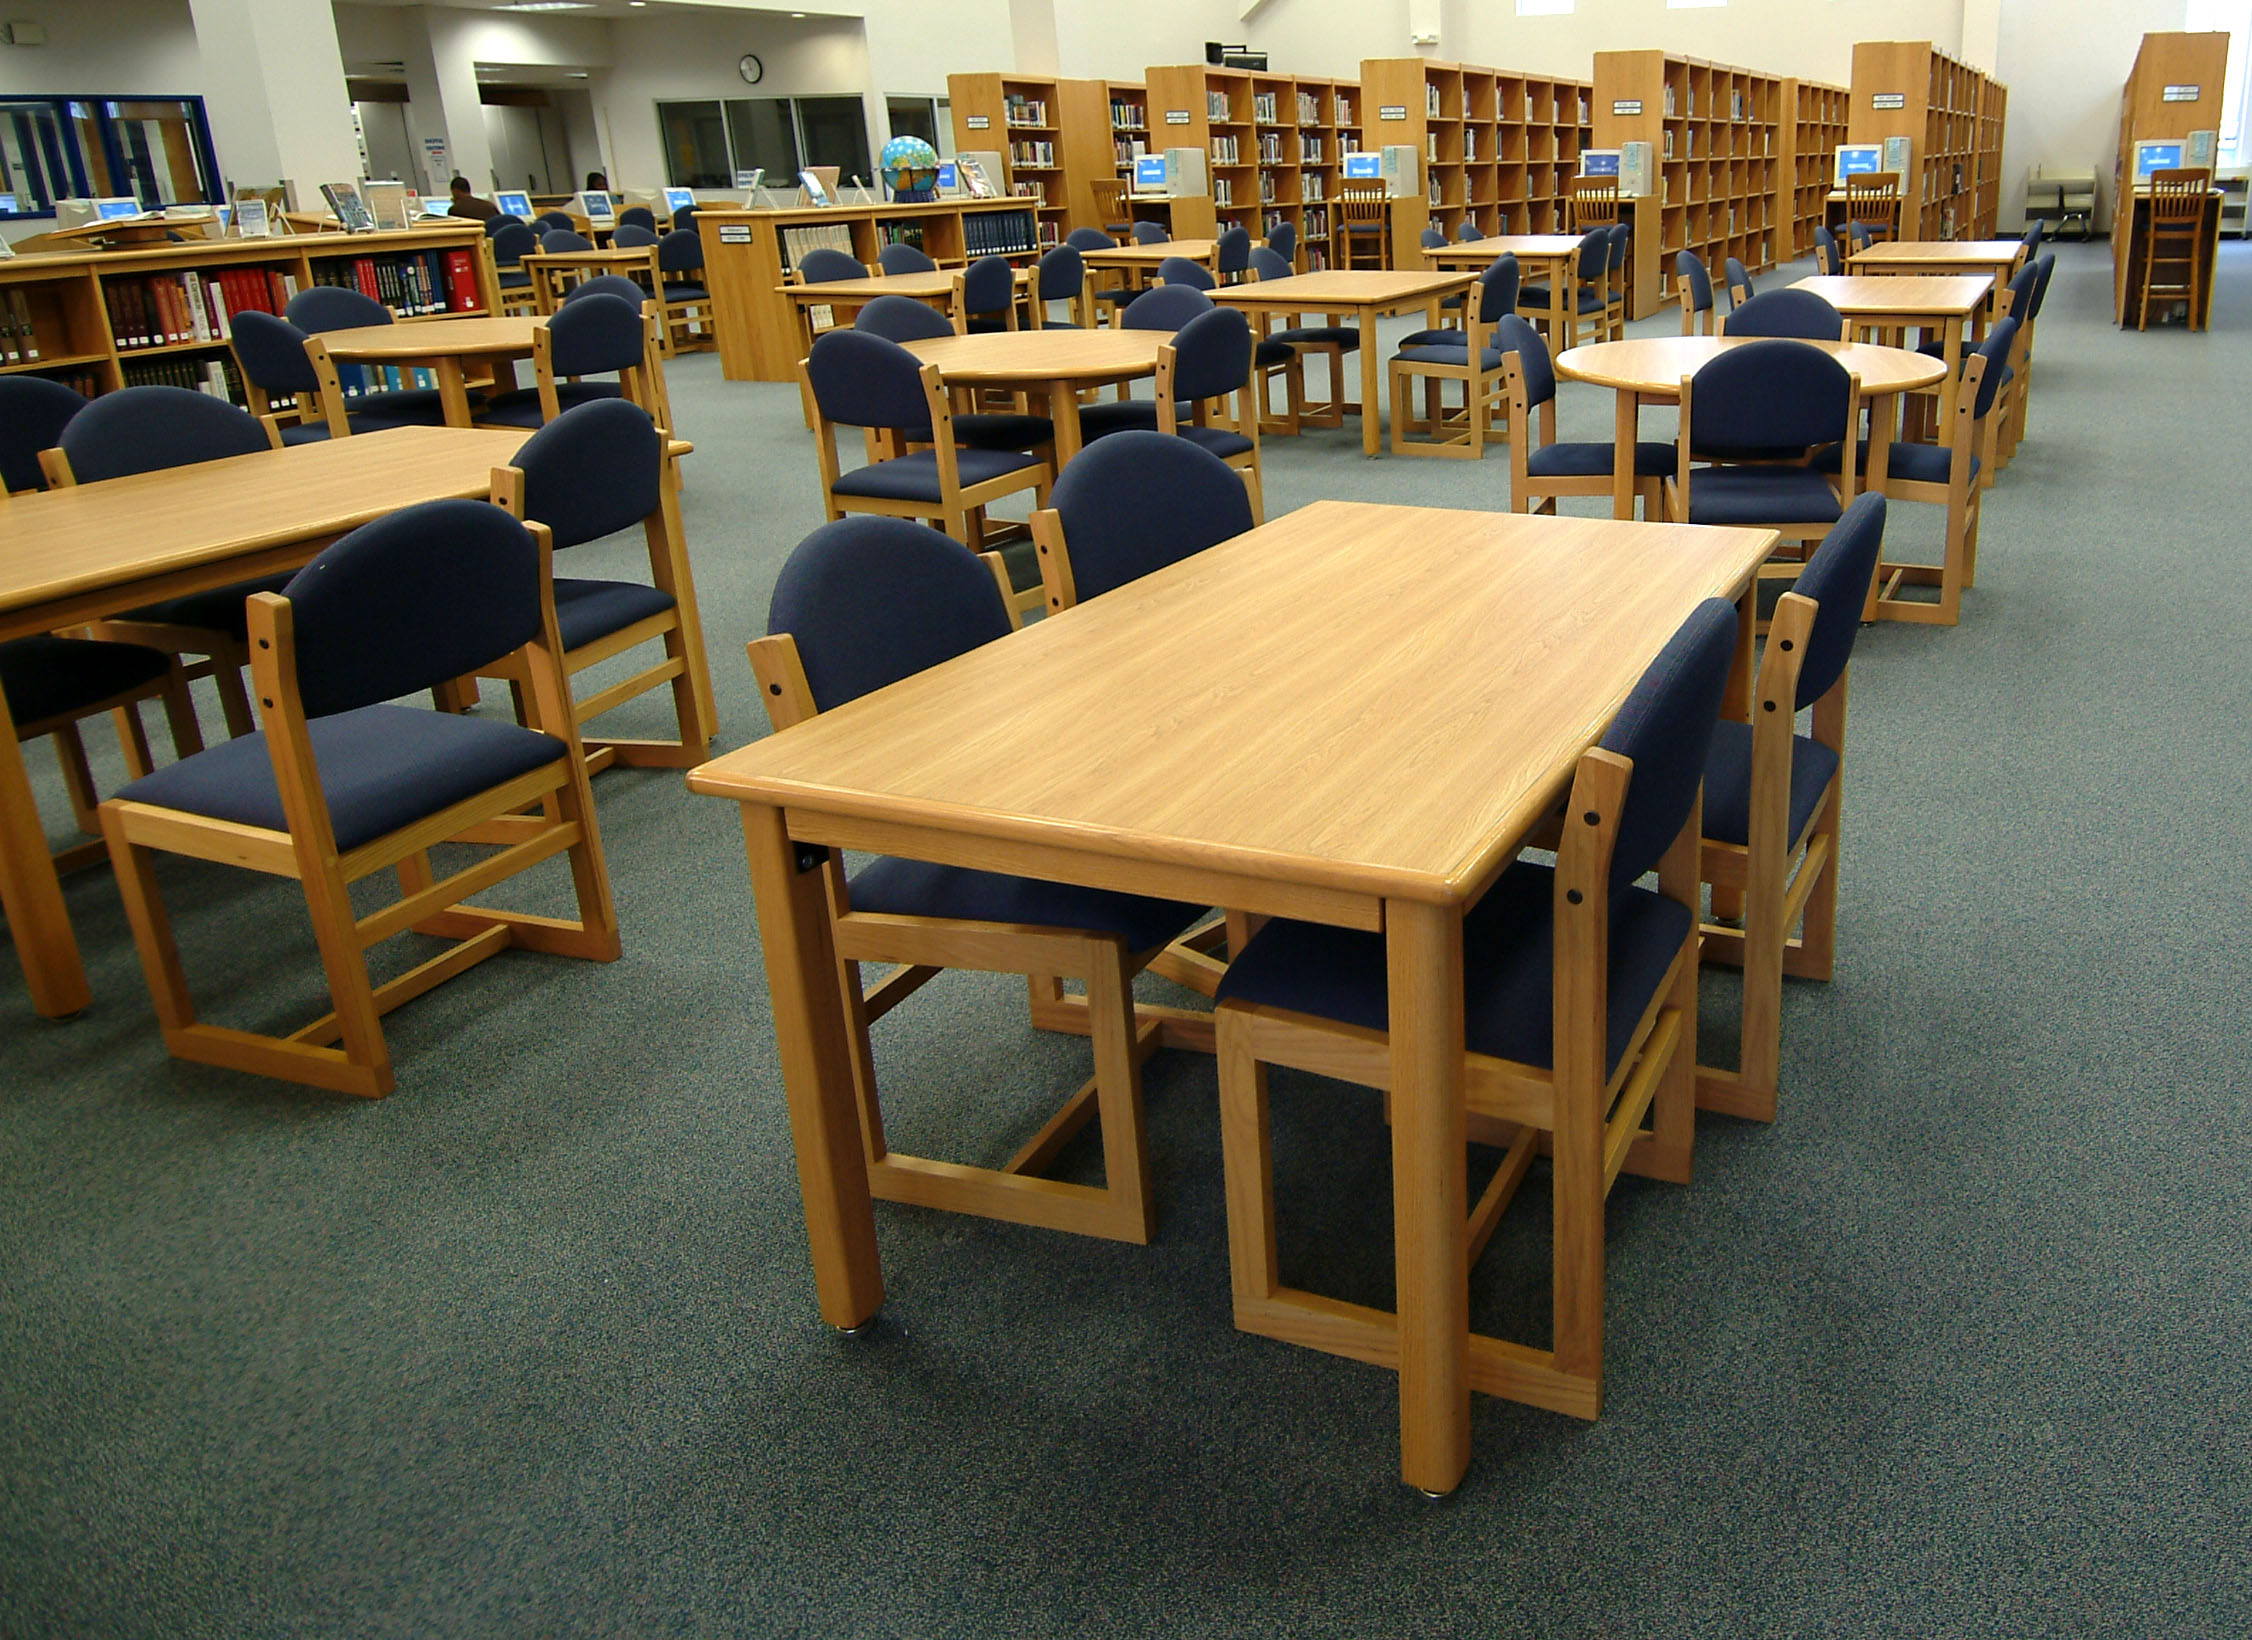 Longo Schools Blog Archive Tesco Wood Library Furniture On New - Library furniture